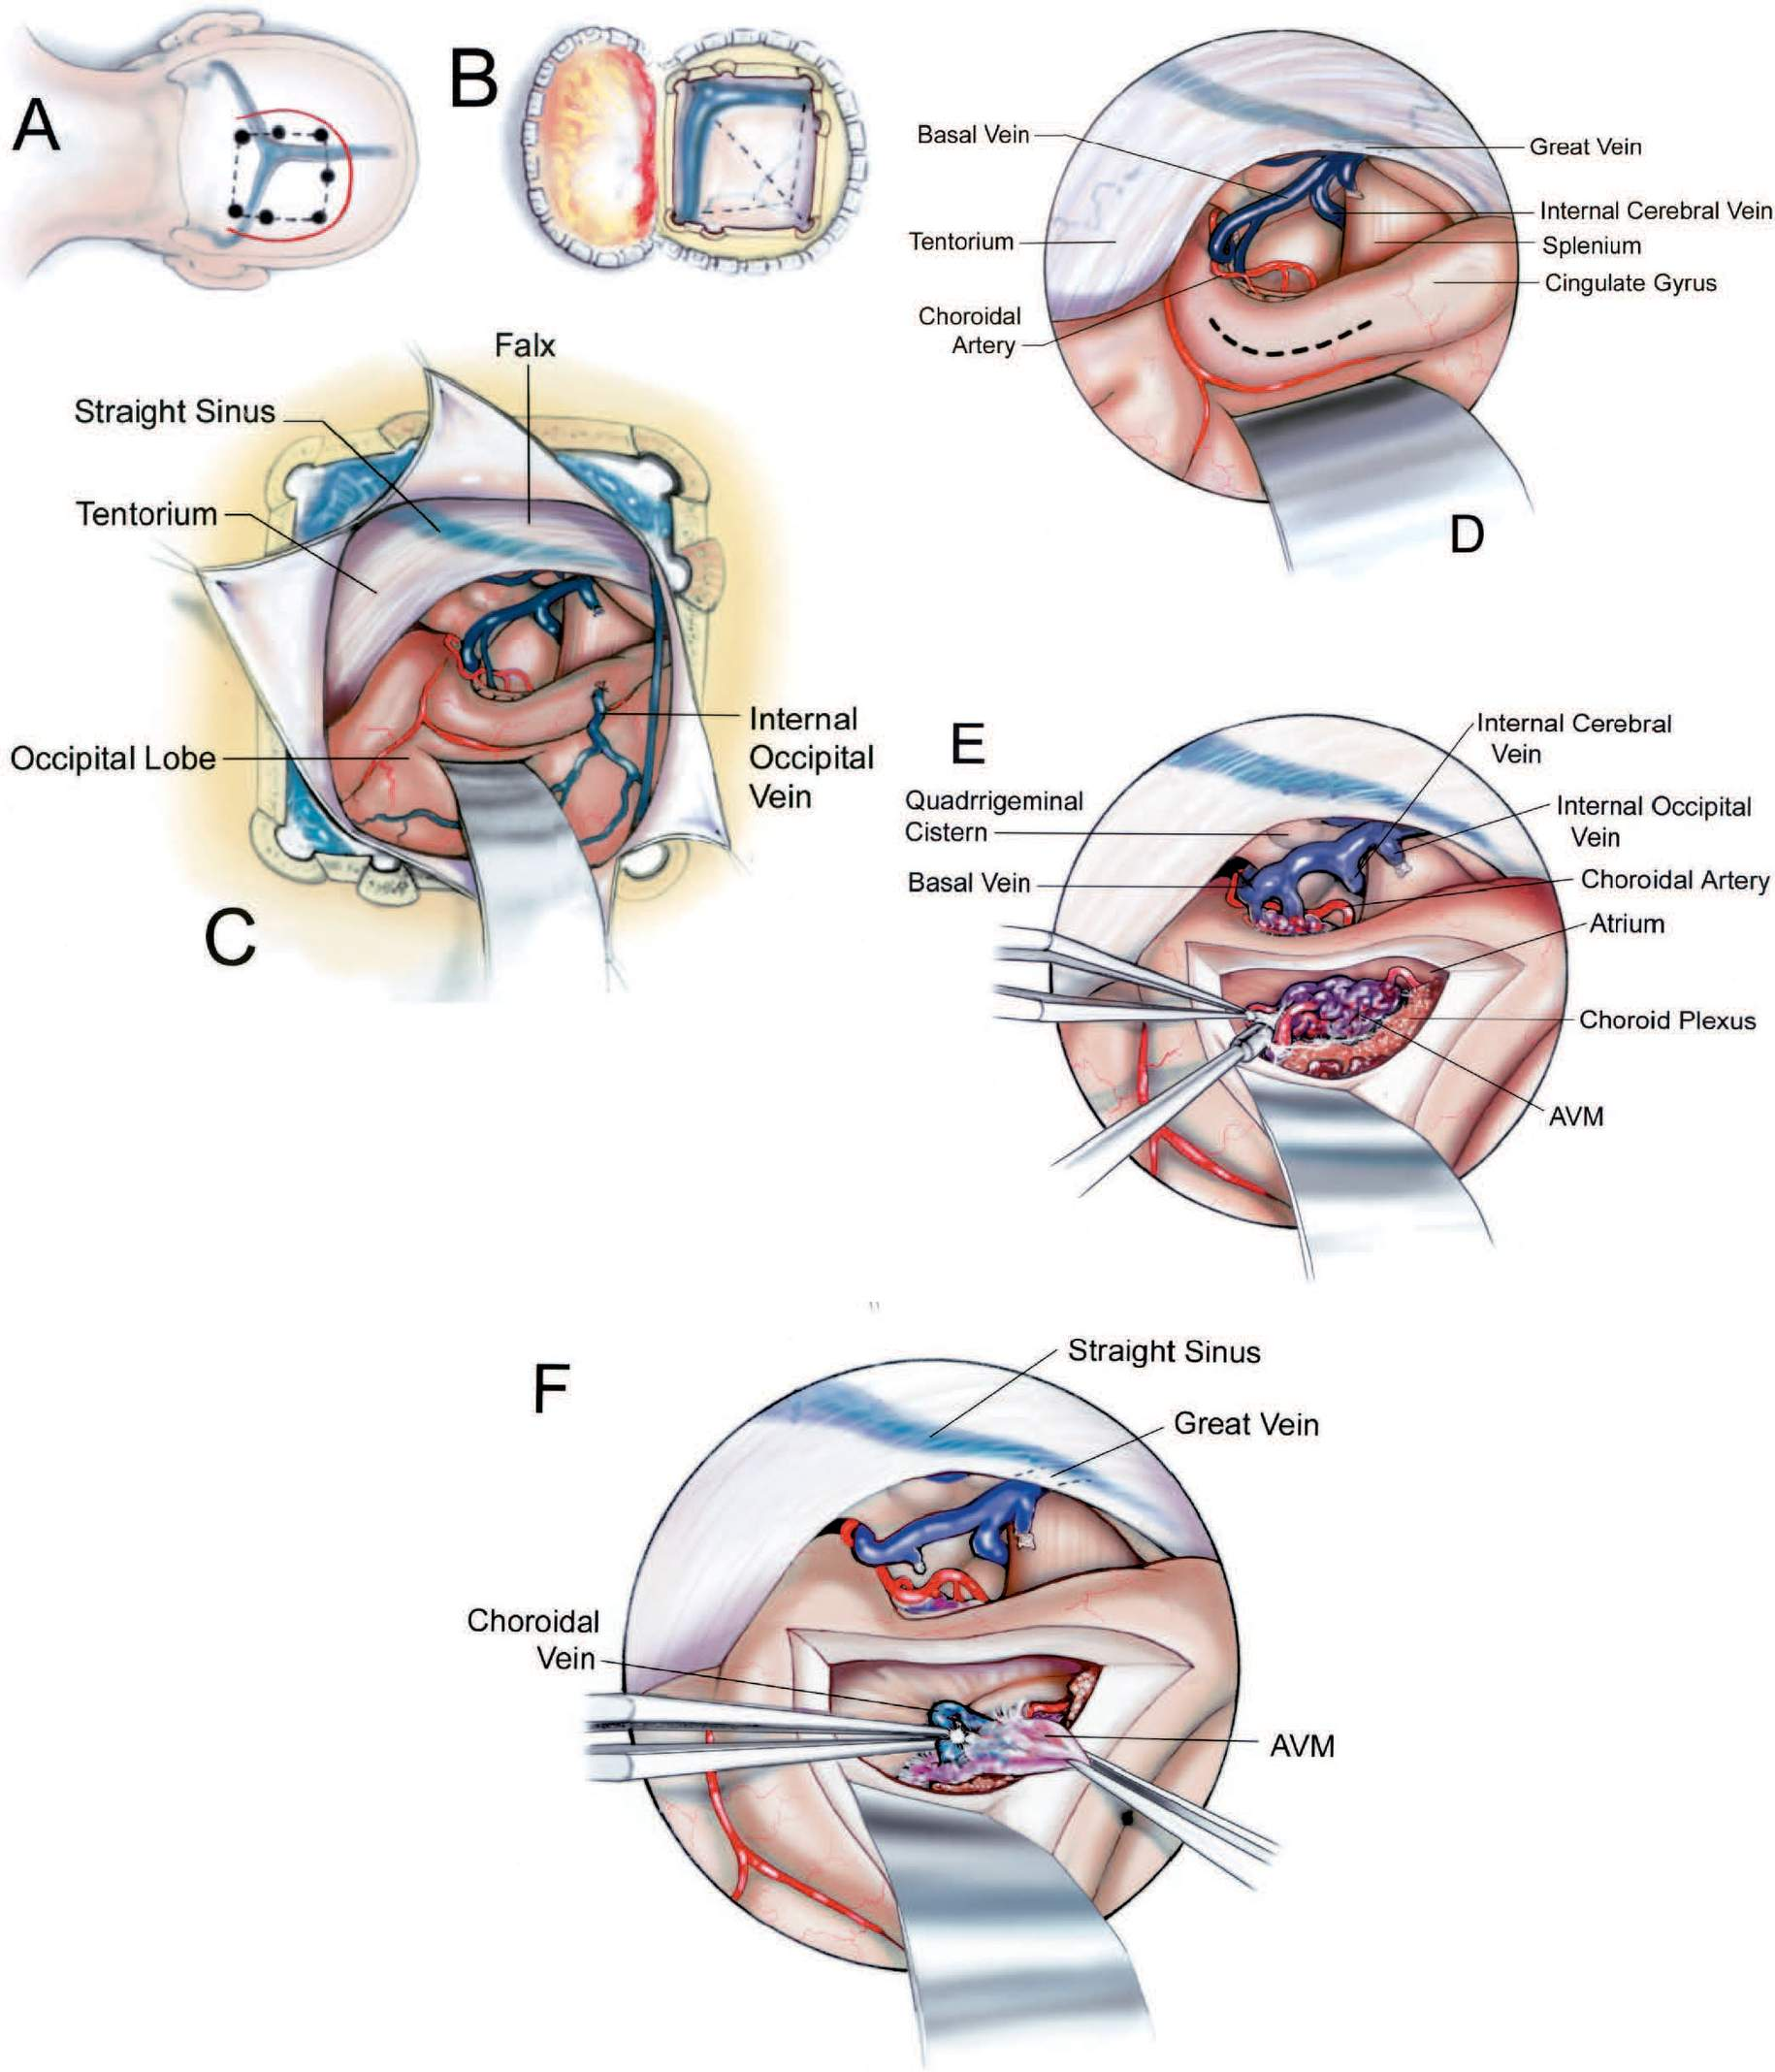 FIGURE 5.29. Occipital-transcingulate approach to an arteriovenous malformation of the right atrium. The down side is the one harboring the lesion. A, right occipital scalp (solid line) and bone flaps (broken line) are elevated. The bone flap extends up to or across the margin of the transverse and sagittal sinuses. B, the dura is opened with pedicles on the transverse and sagittal sinuses. C, the right occipital lobe is retracted and allowed to settle downward away from the falx to expose the isthmus of the cingulate gyrus. An internal occipital vein is often sacrificed to reach this area. D, enlarged view. The broken line shows the site of the cortical incision through the isthmus of the cingulate gyrus. The internal cerebral, basal, and great veins are exposed in the quadrigeminal cistern. E, the malformation is situated in the choroid plexus. The arteries entering and the veins exiting the malformation pass through the choroidal fissure to reach the quadrigeminal cistern. F, the choroidal arteries that feed the malformation have been coagulated and divided and the last draining vein from the malformation is being obliterated with bipolar coagulation.